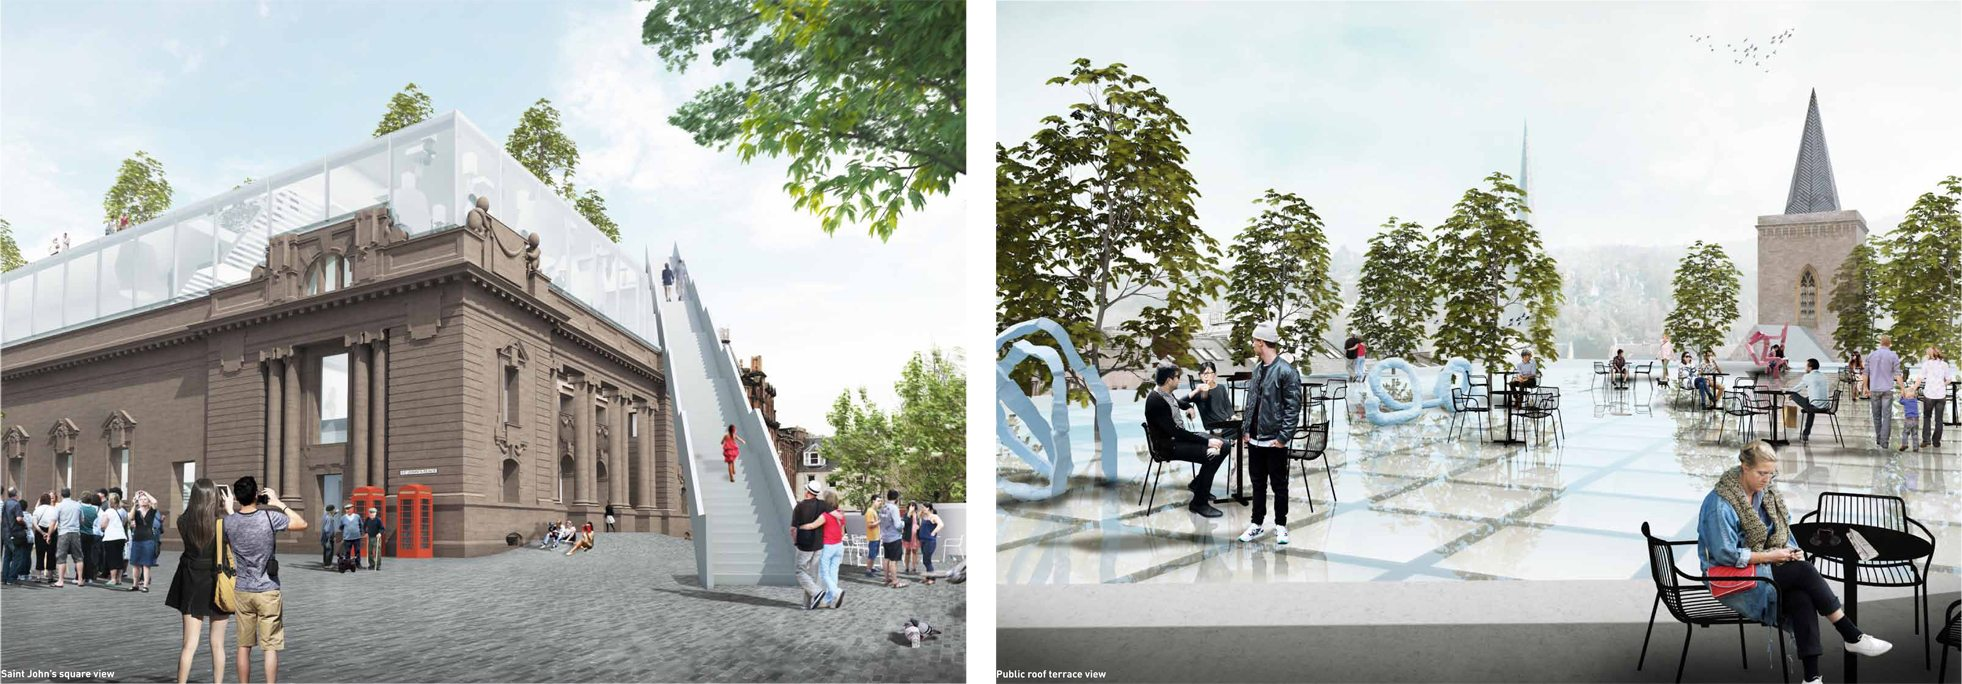 Perth City Hall Design Competition